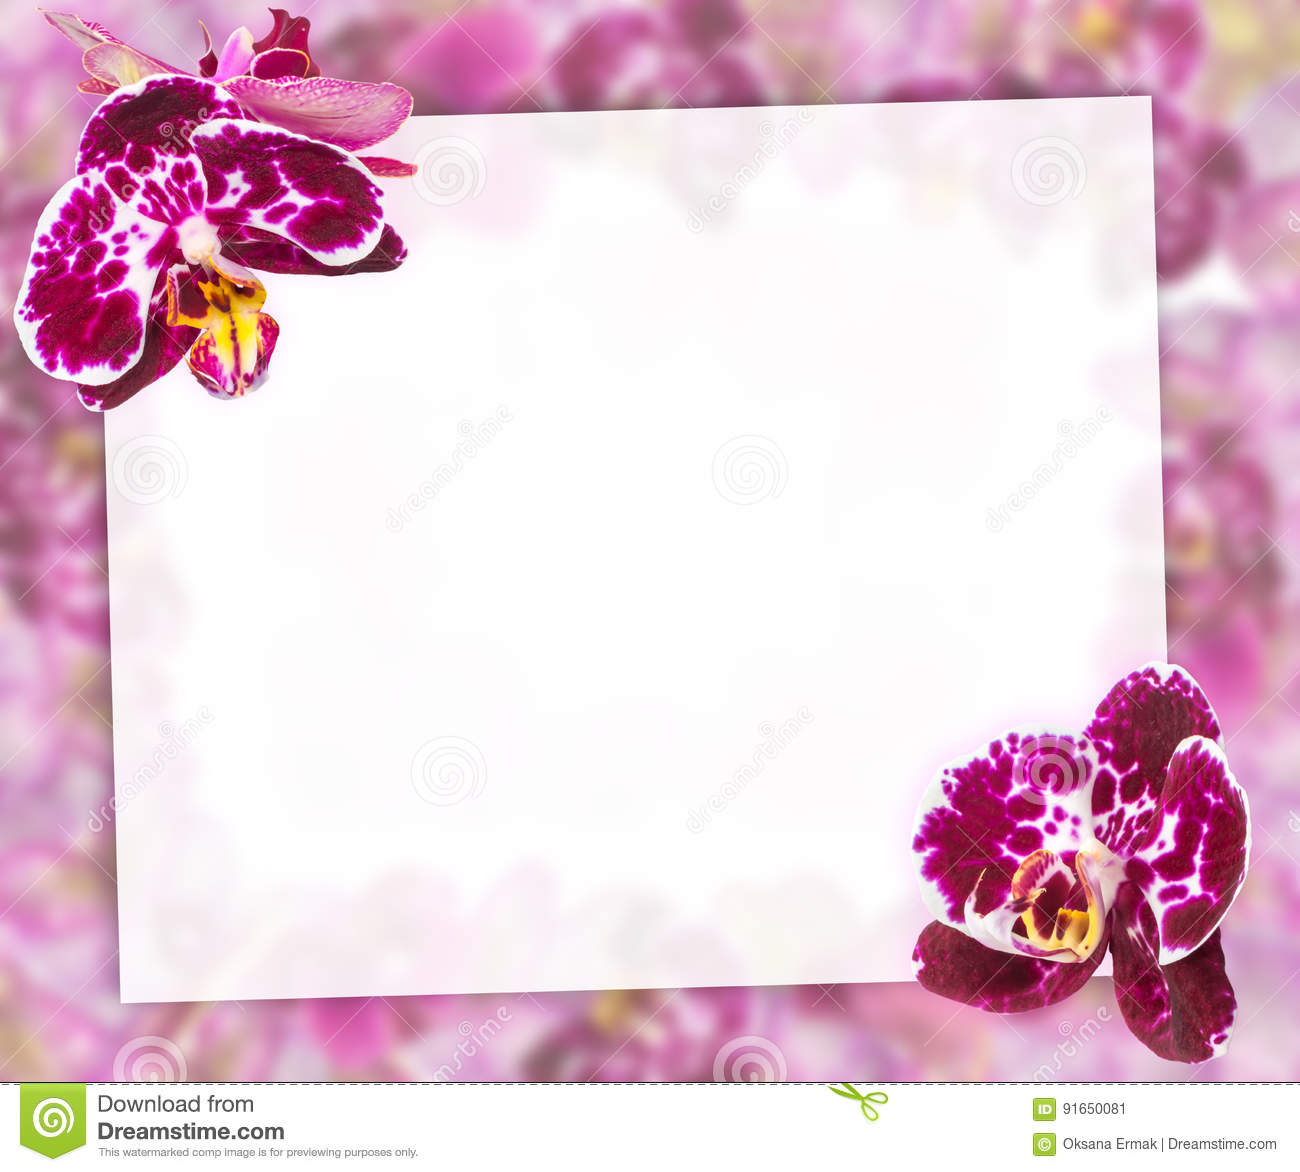 Beautiful pink orchids border for greeting card or lovely flower download beautiful pink orchids border for greeting card or lovely flower frame stock image image m4hsunfo